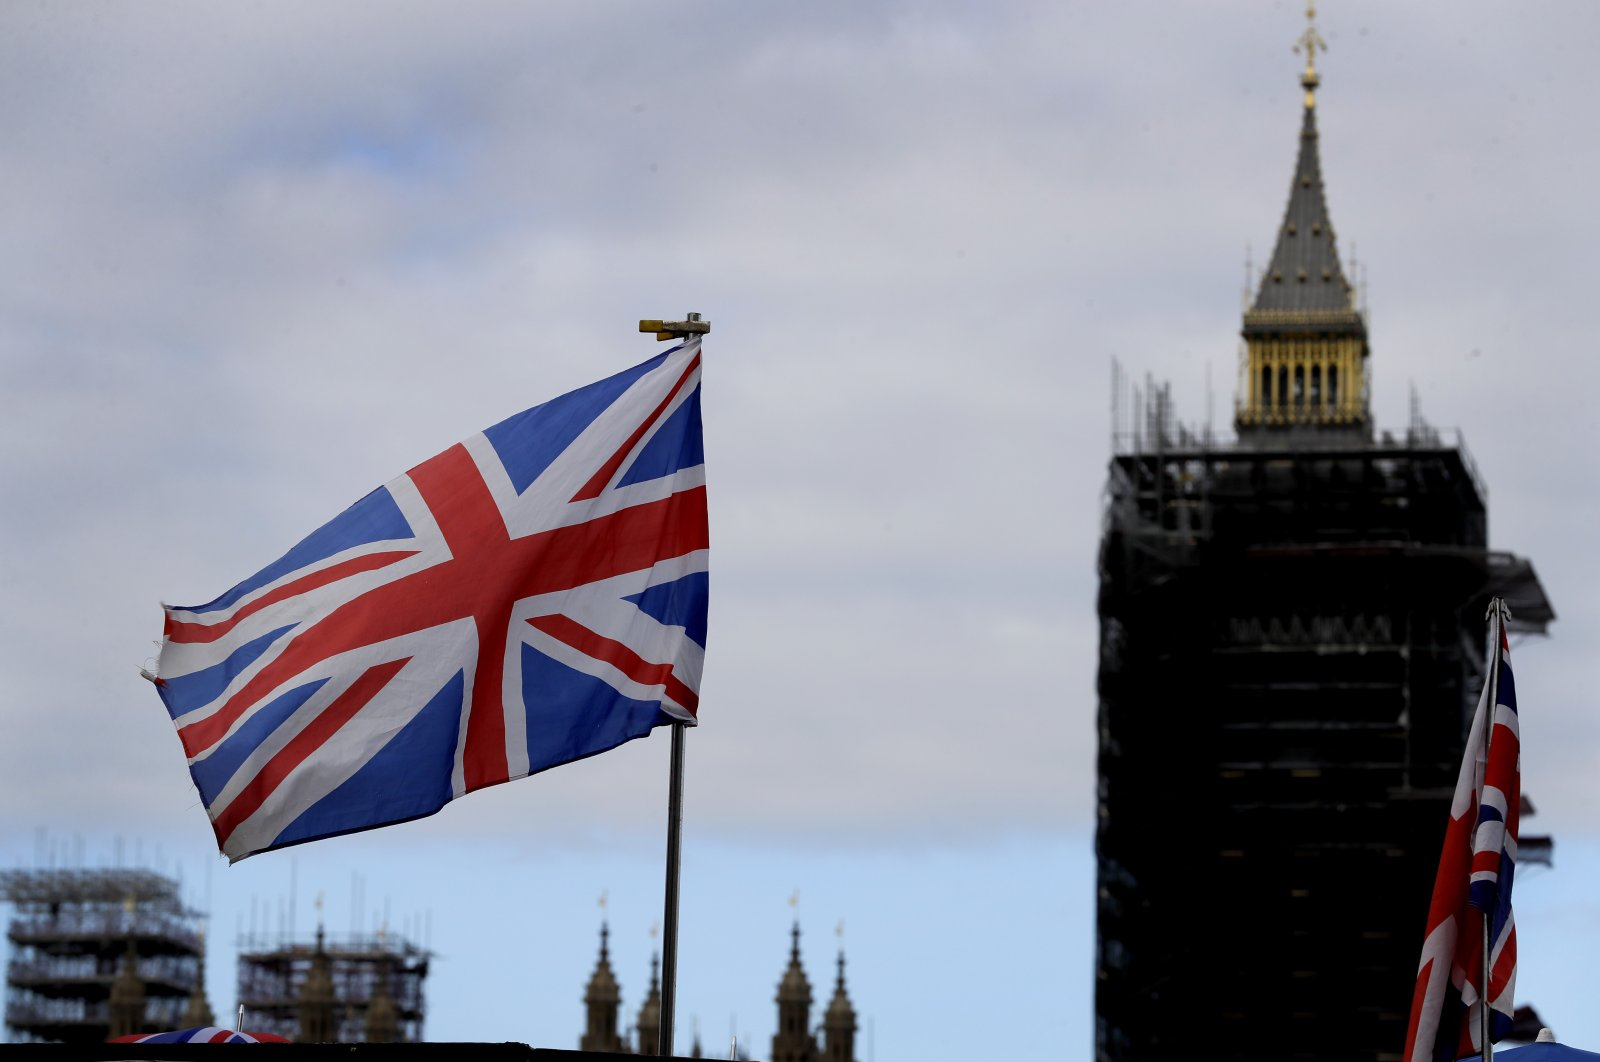 A flag flies above a souvenir stand in front of Big Ben in London, Friday, Oct. 16, 2020. (AP Photo)